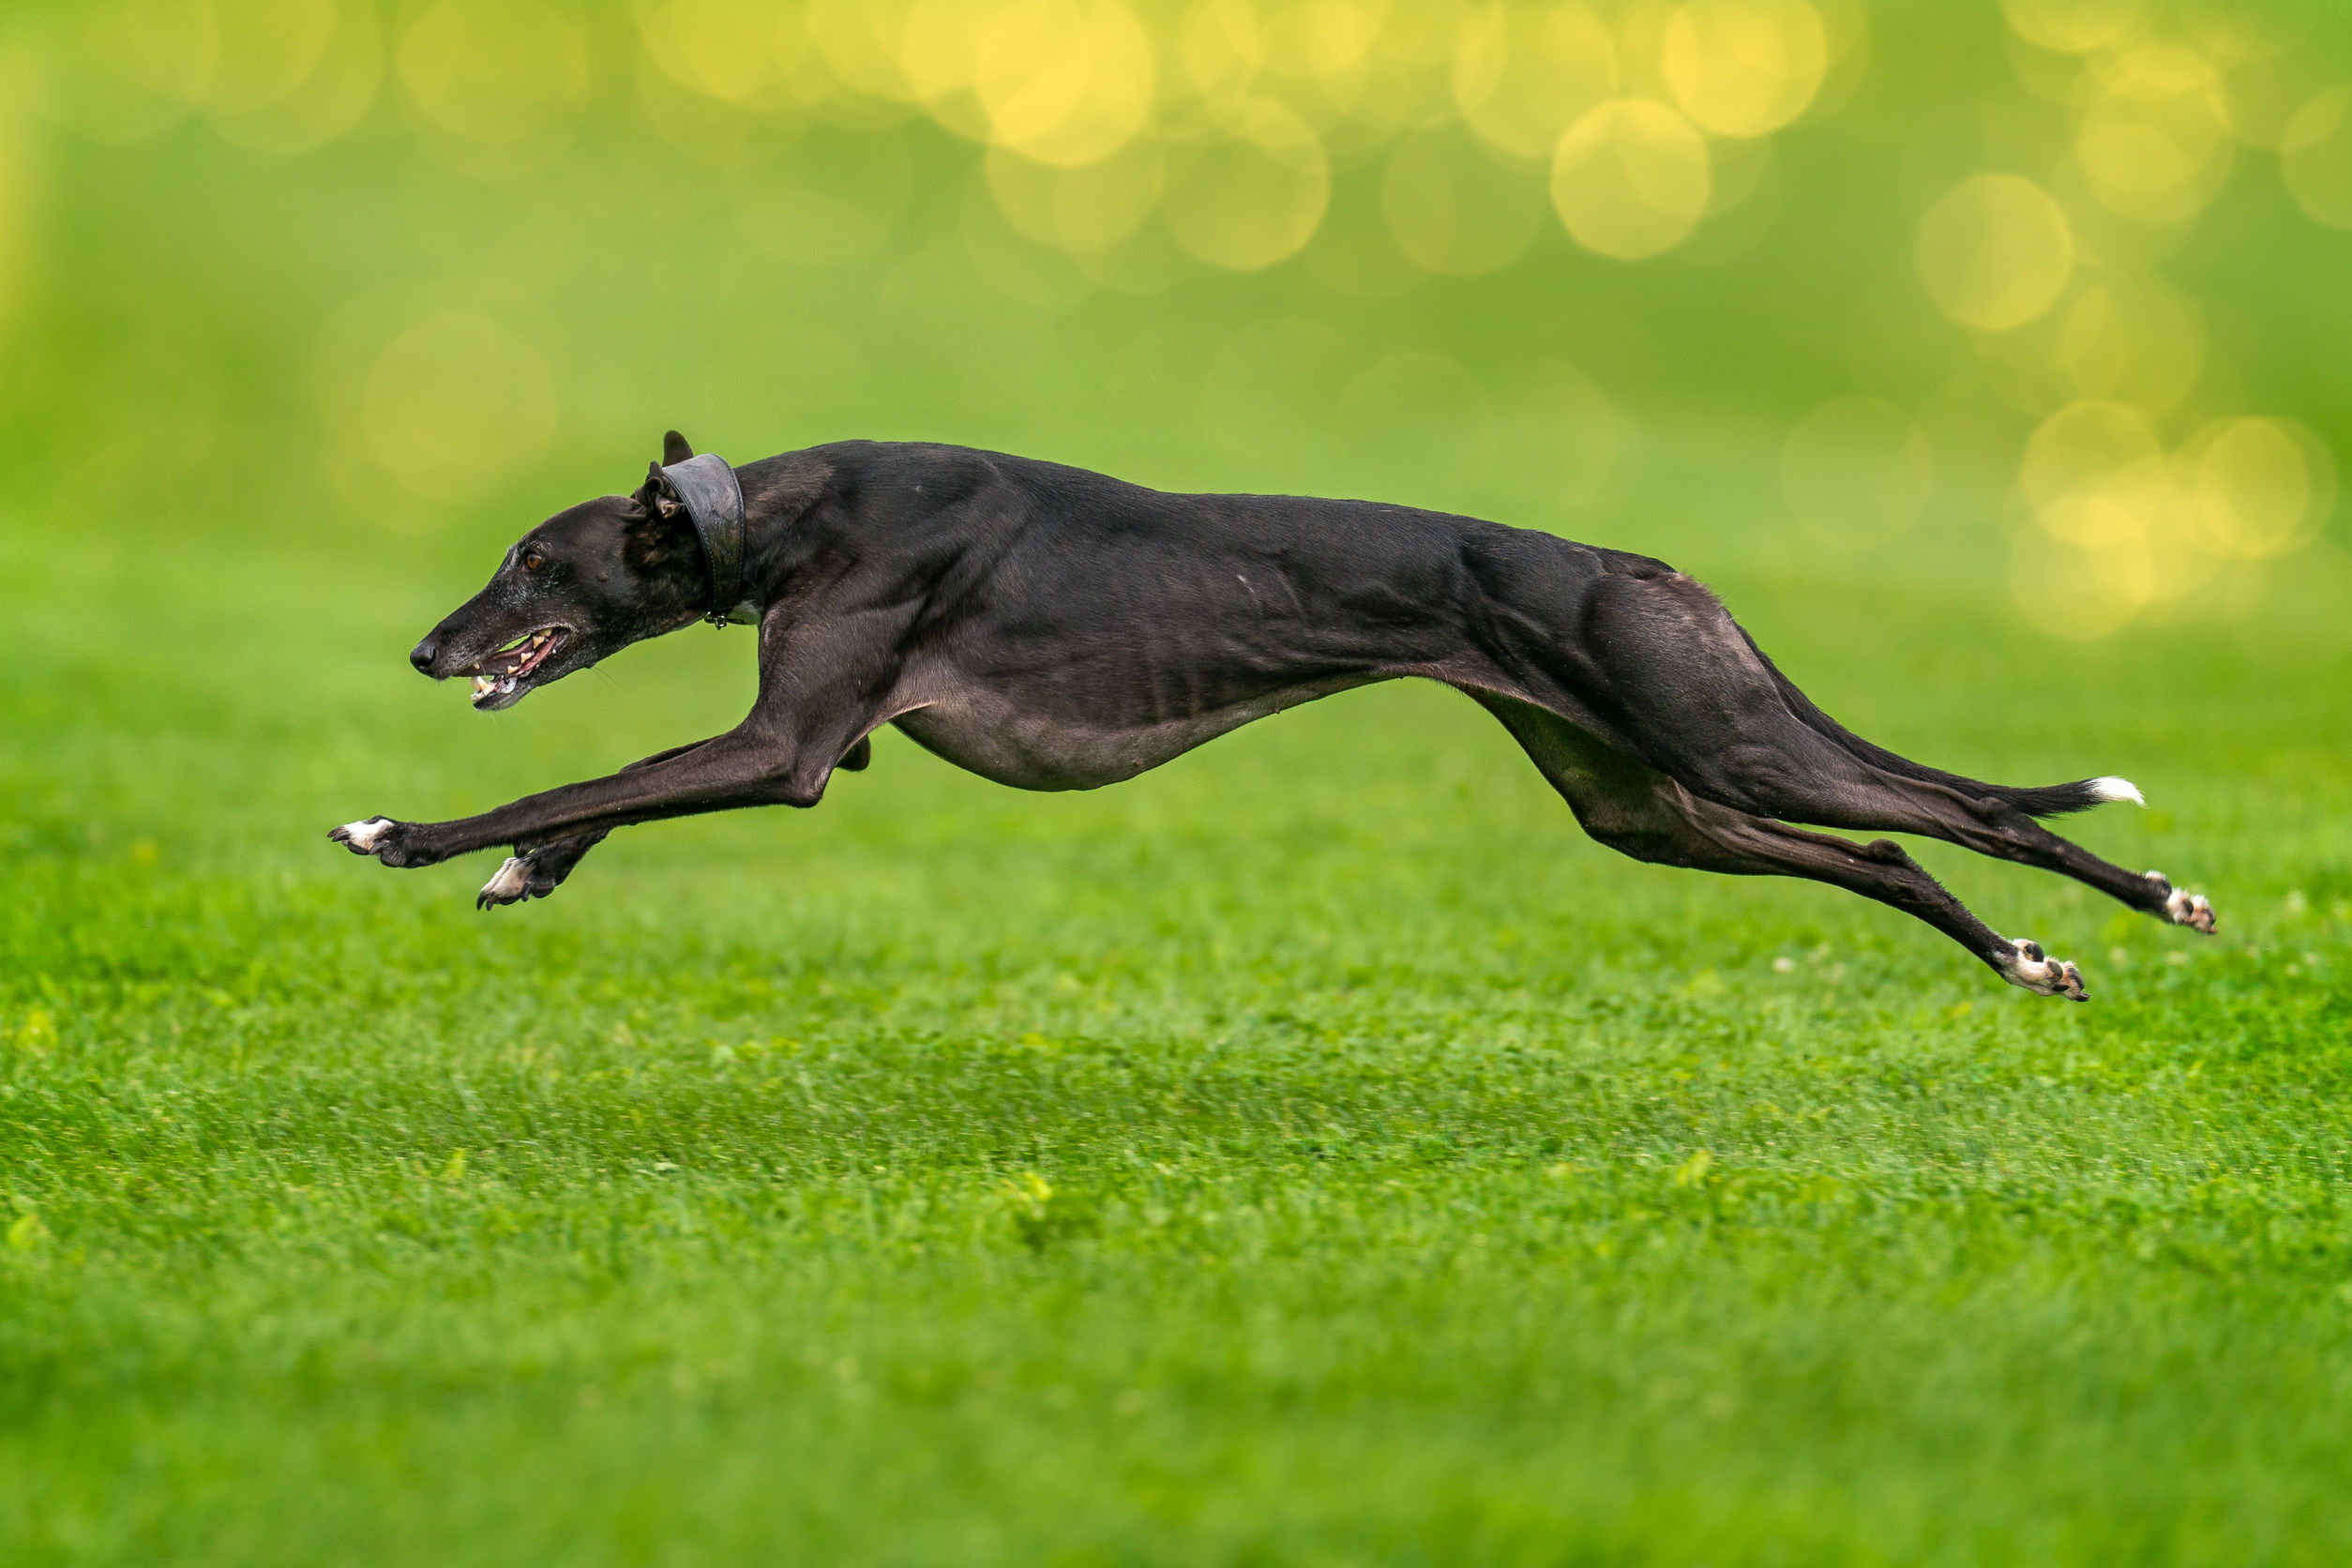 A greyhound completely lifted off the ground during the race